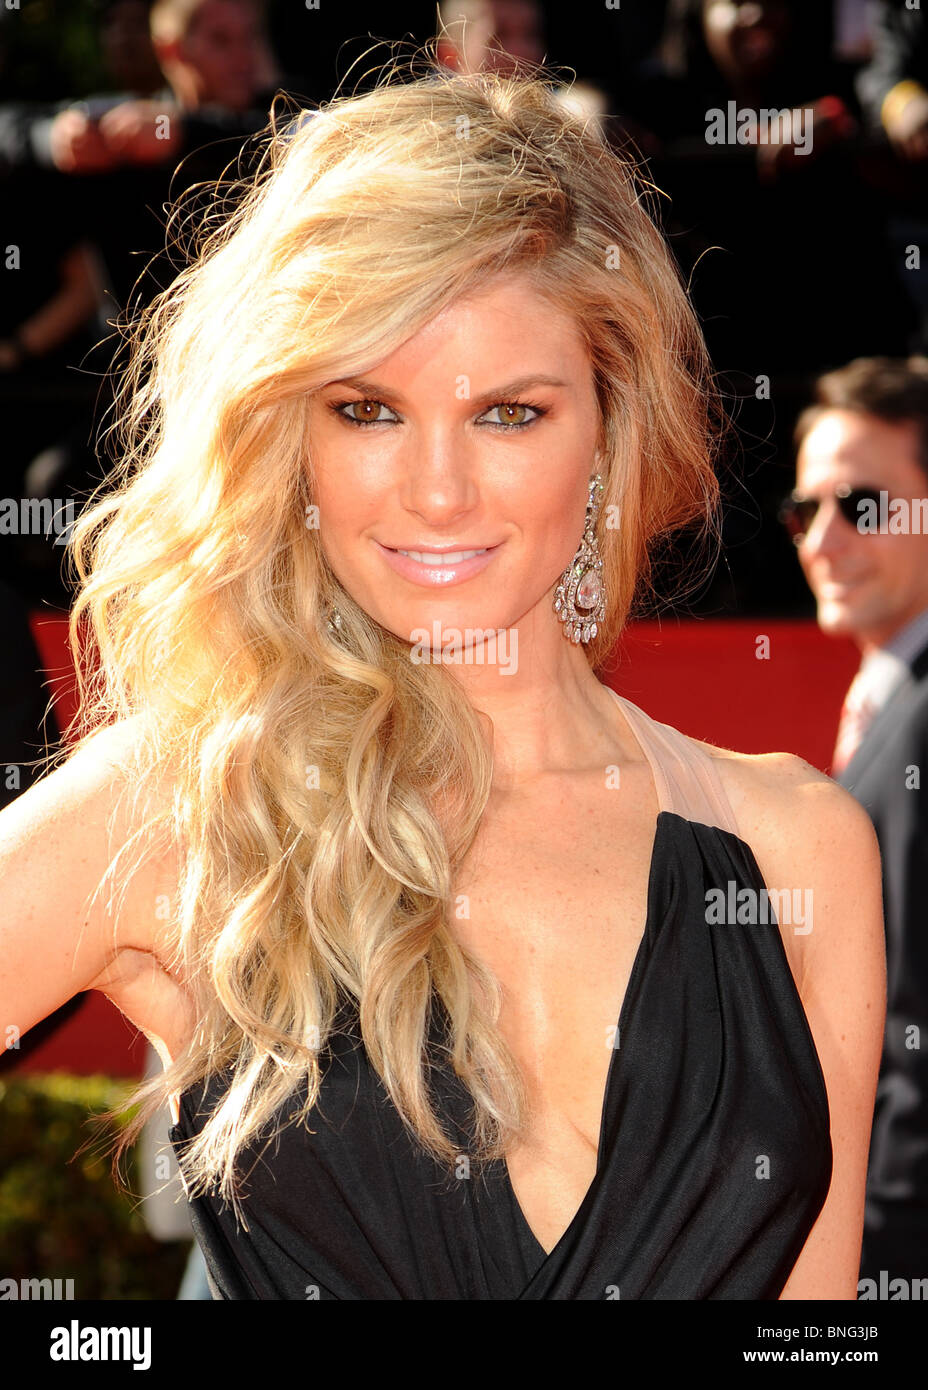 MARISA MILLER - US model in July 2010 - Stock Image